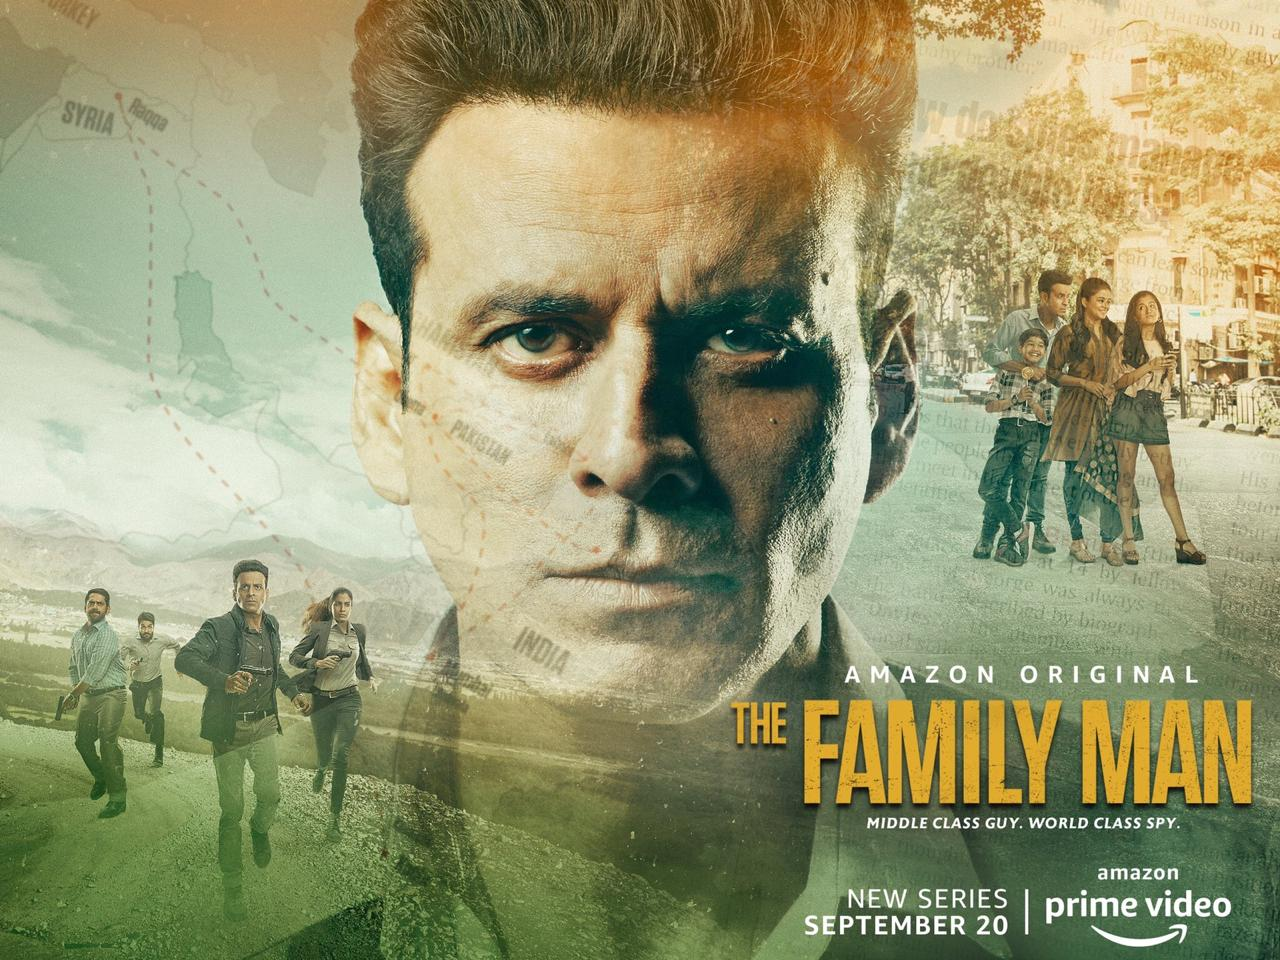 The Family Man S01 (2019) Hindi Complete Web Series 1.4GB HDRip Download